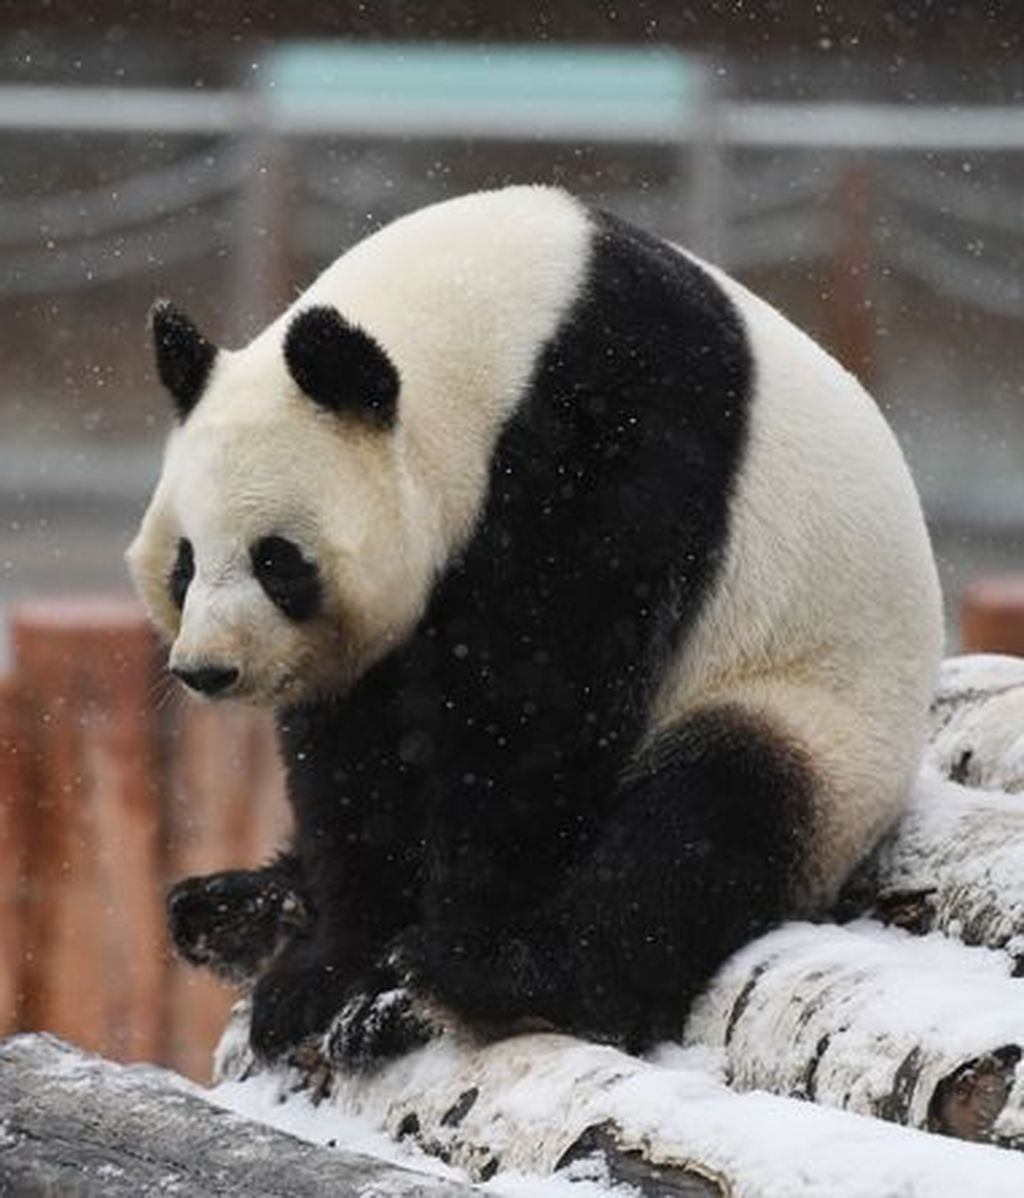 Giant-Pandas-Play-In-Changchuns-First-Snow (2)